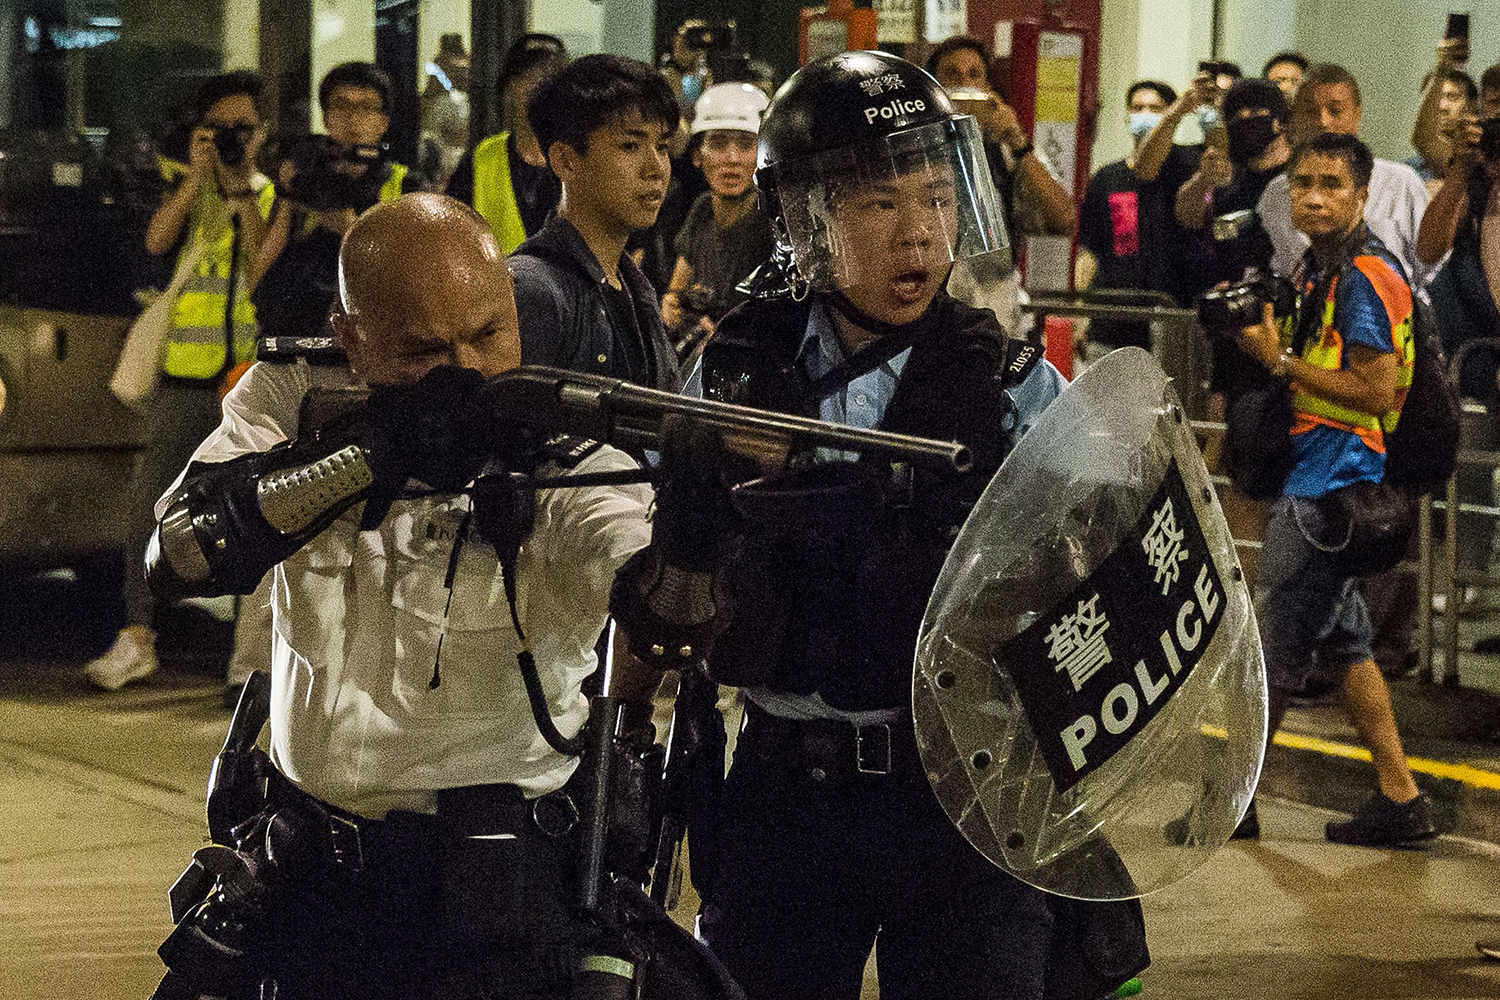 A police officer points a firearm during a clash with protesters who had gathered outside Kwai Chung police station, in support of protesters detained and charged with rioting, in Hong Kong on July 30. ISAAC LAWRENCE/AFP/Getty Images